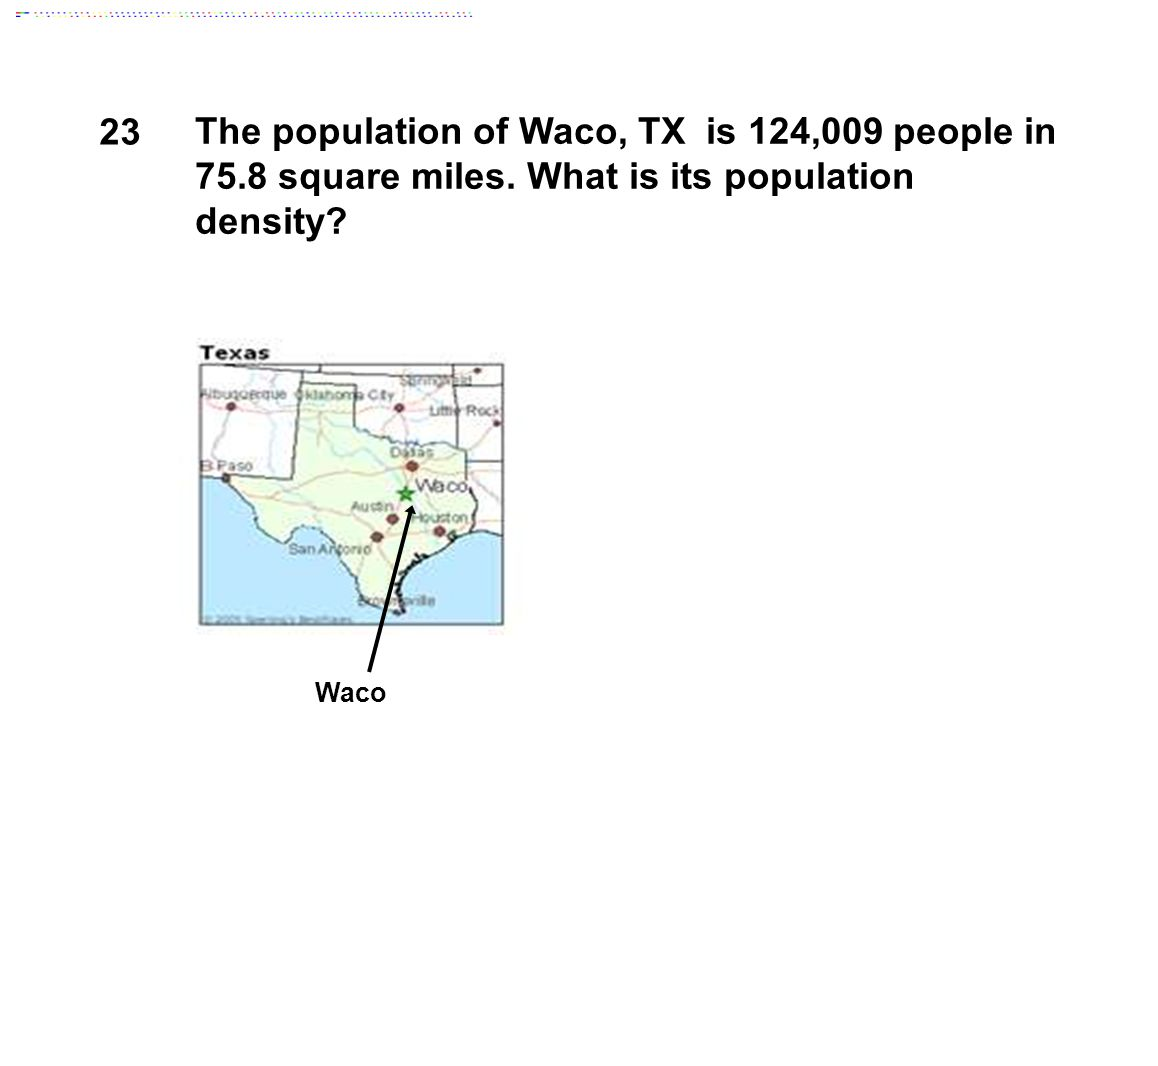 23 The population of Waco, TX is 124,009 people in 75.8 square miles. What is its population density